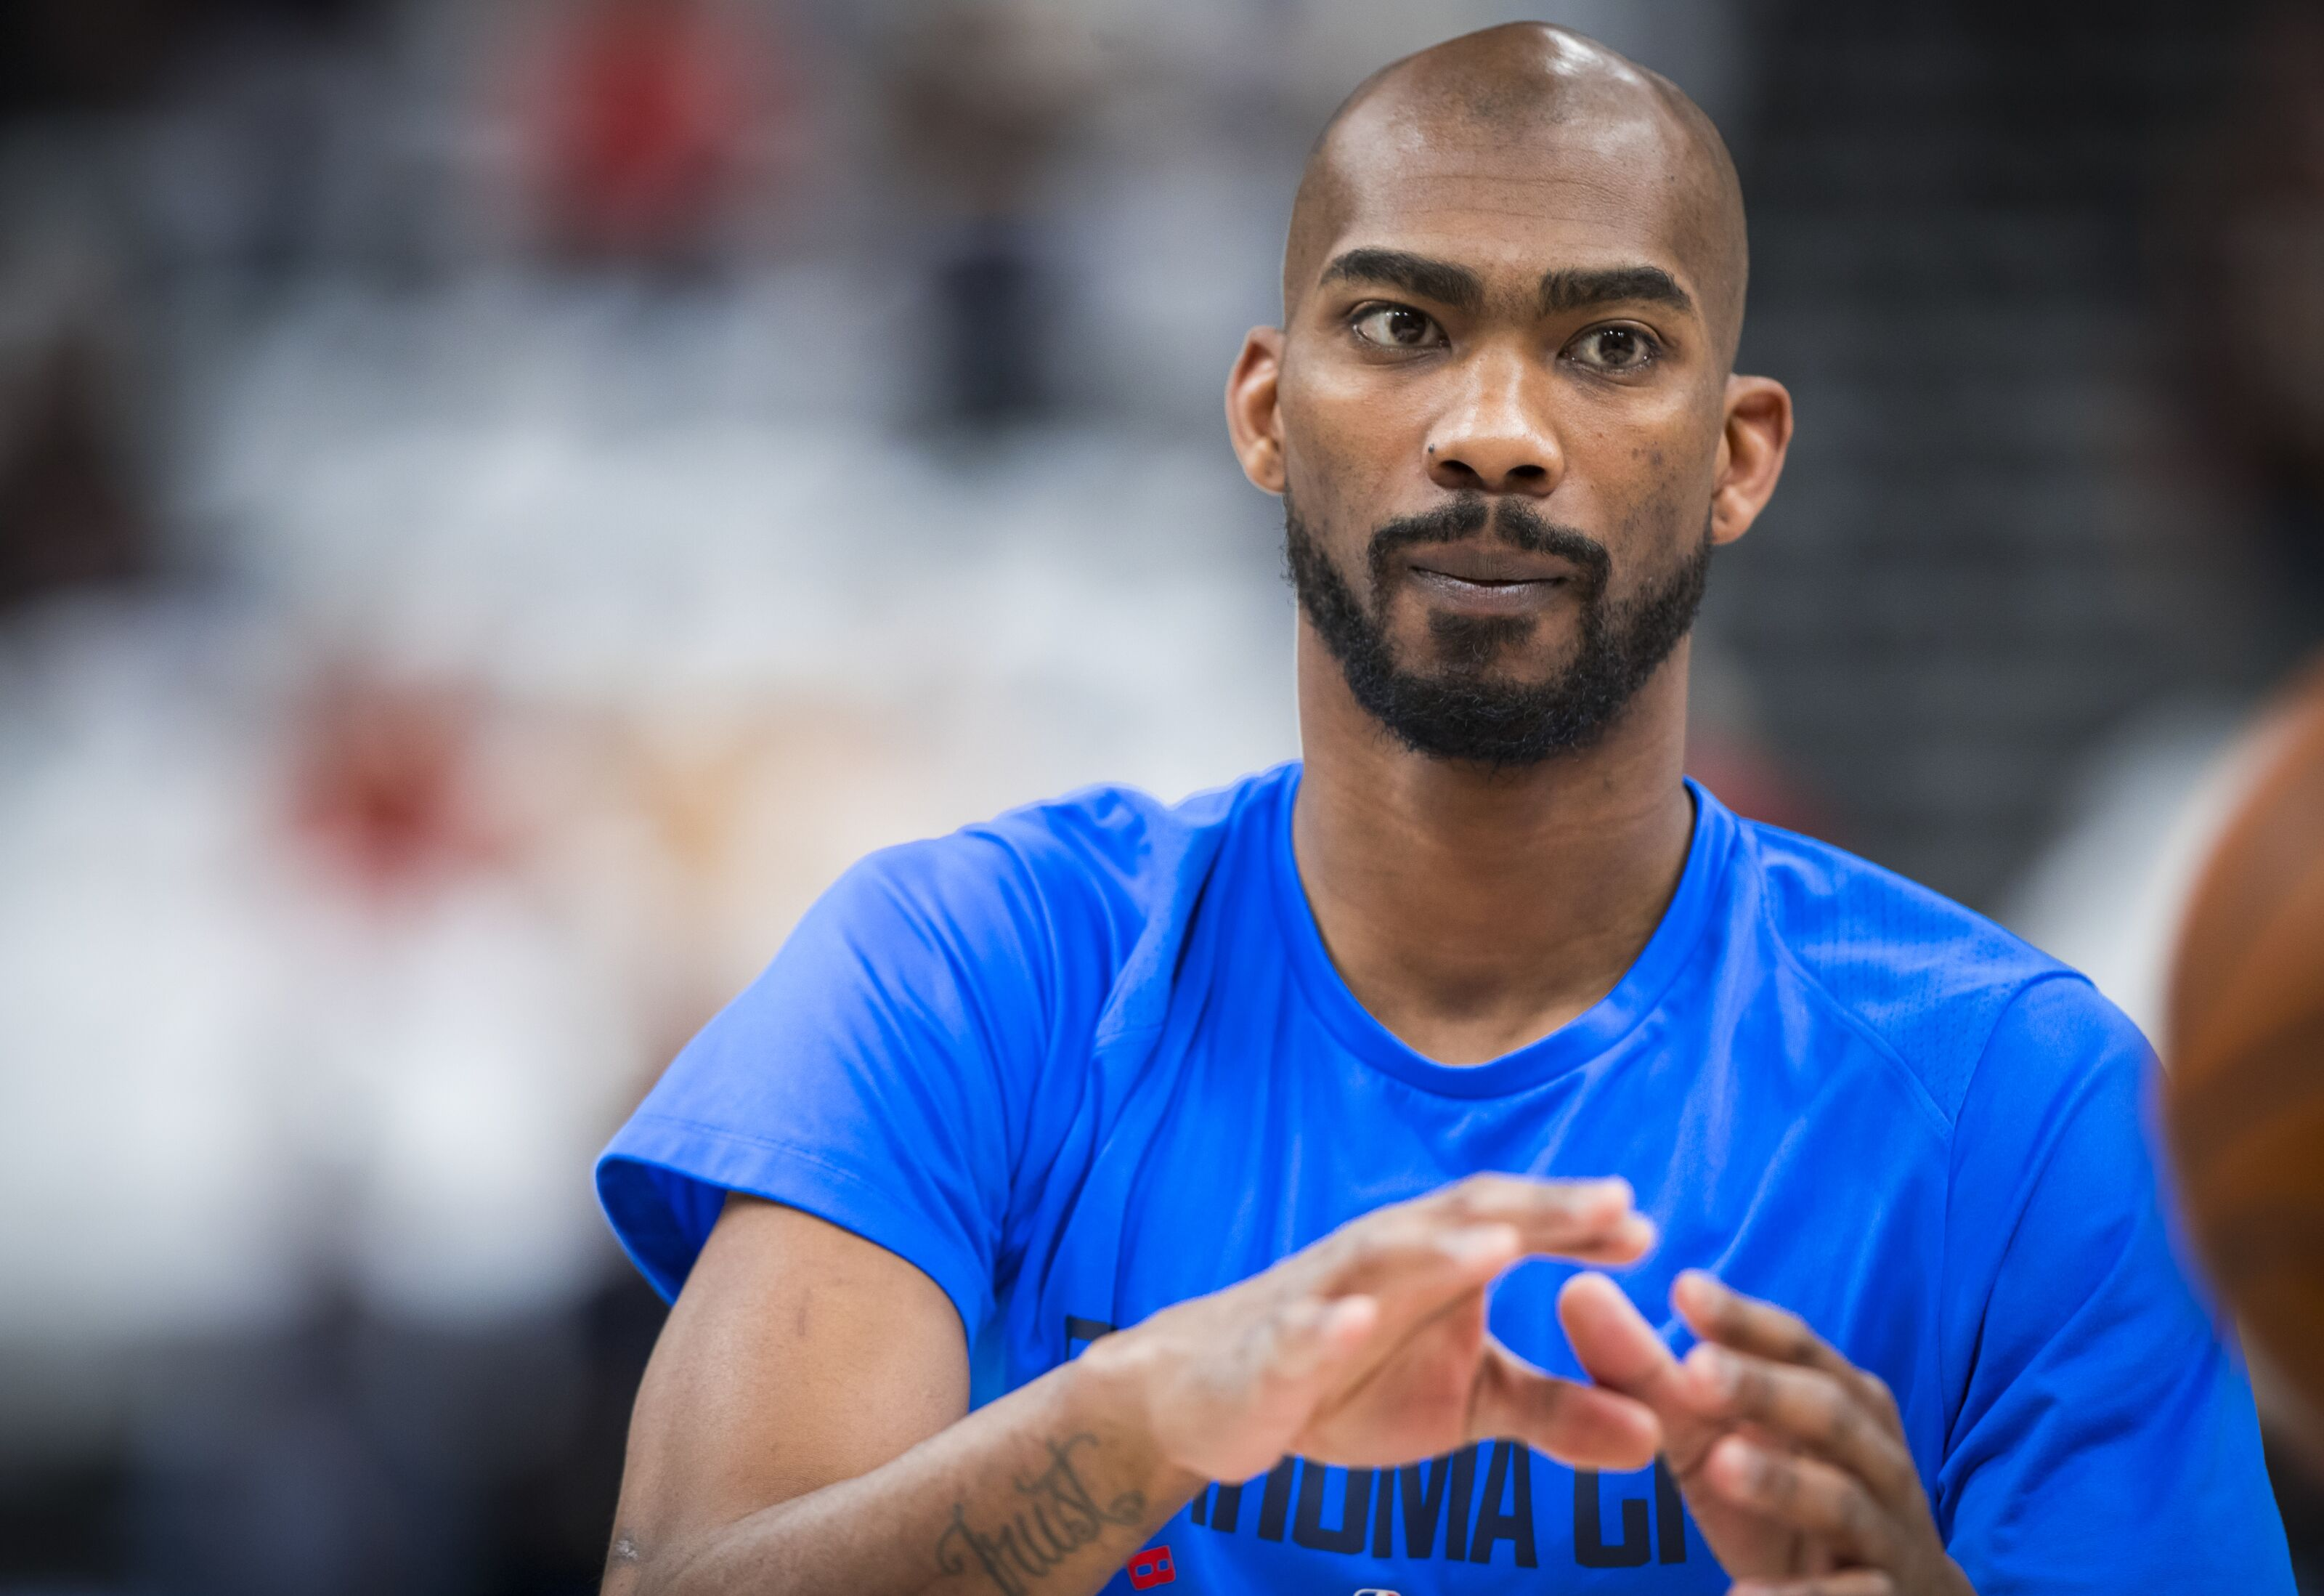 OKC Thunder in the news: All-NBA honors, Brewer reps at Basketball Without Borders